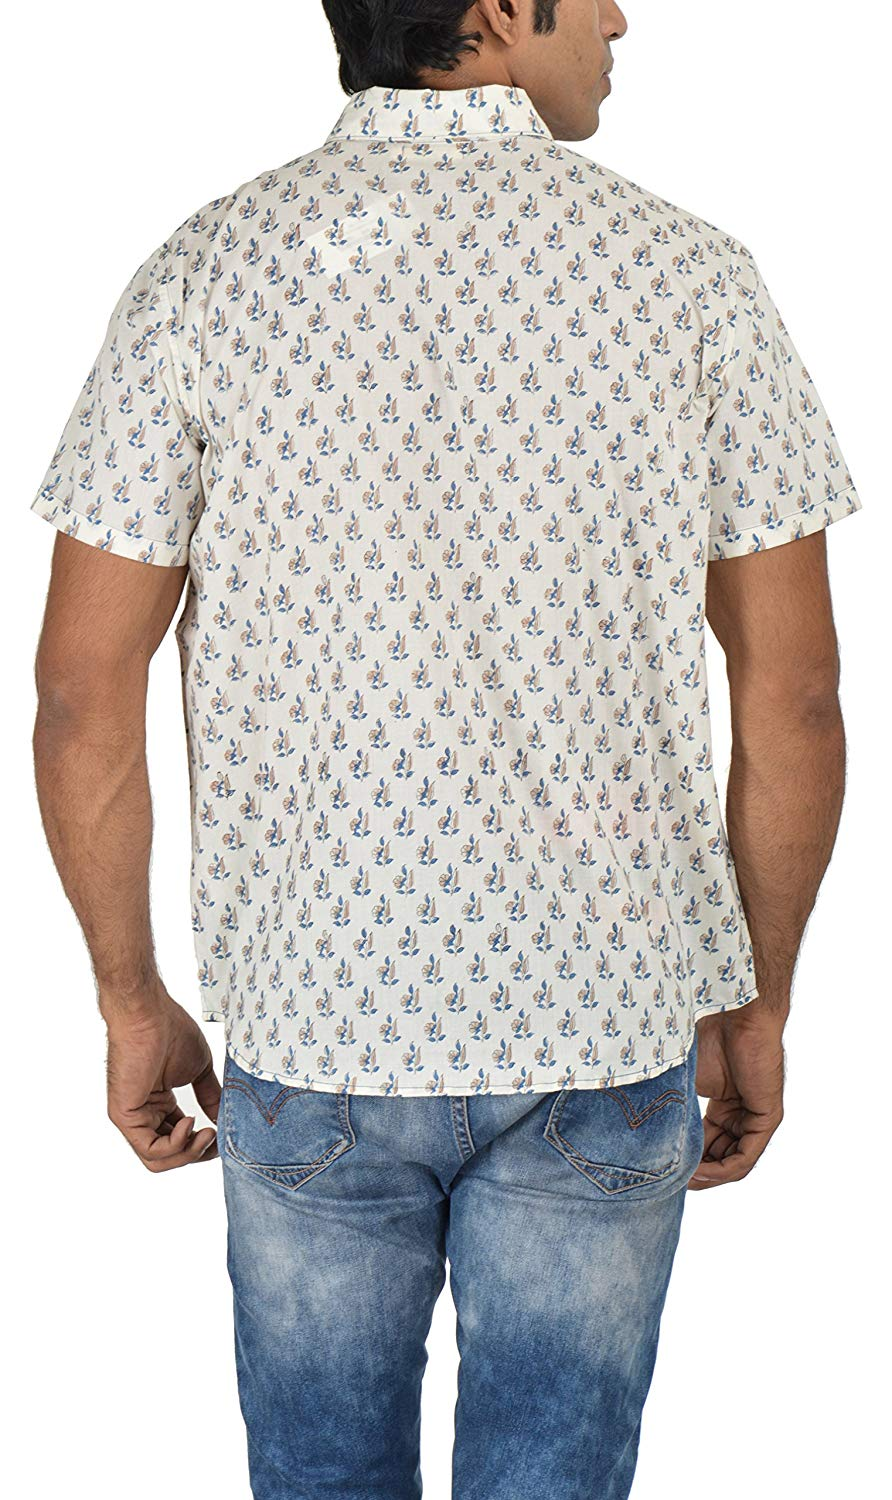 Holiday Shirt - Block Printed - Blue- Shirt